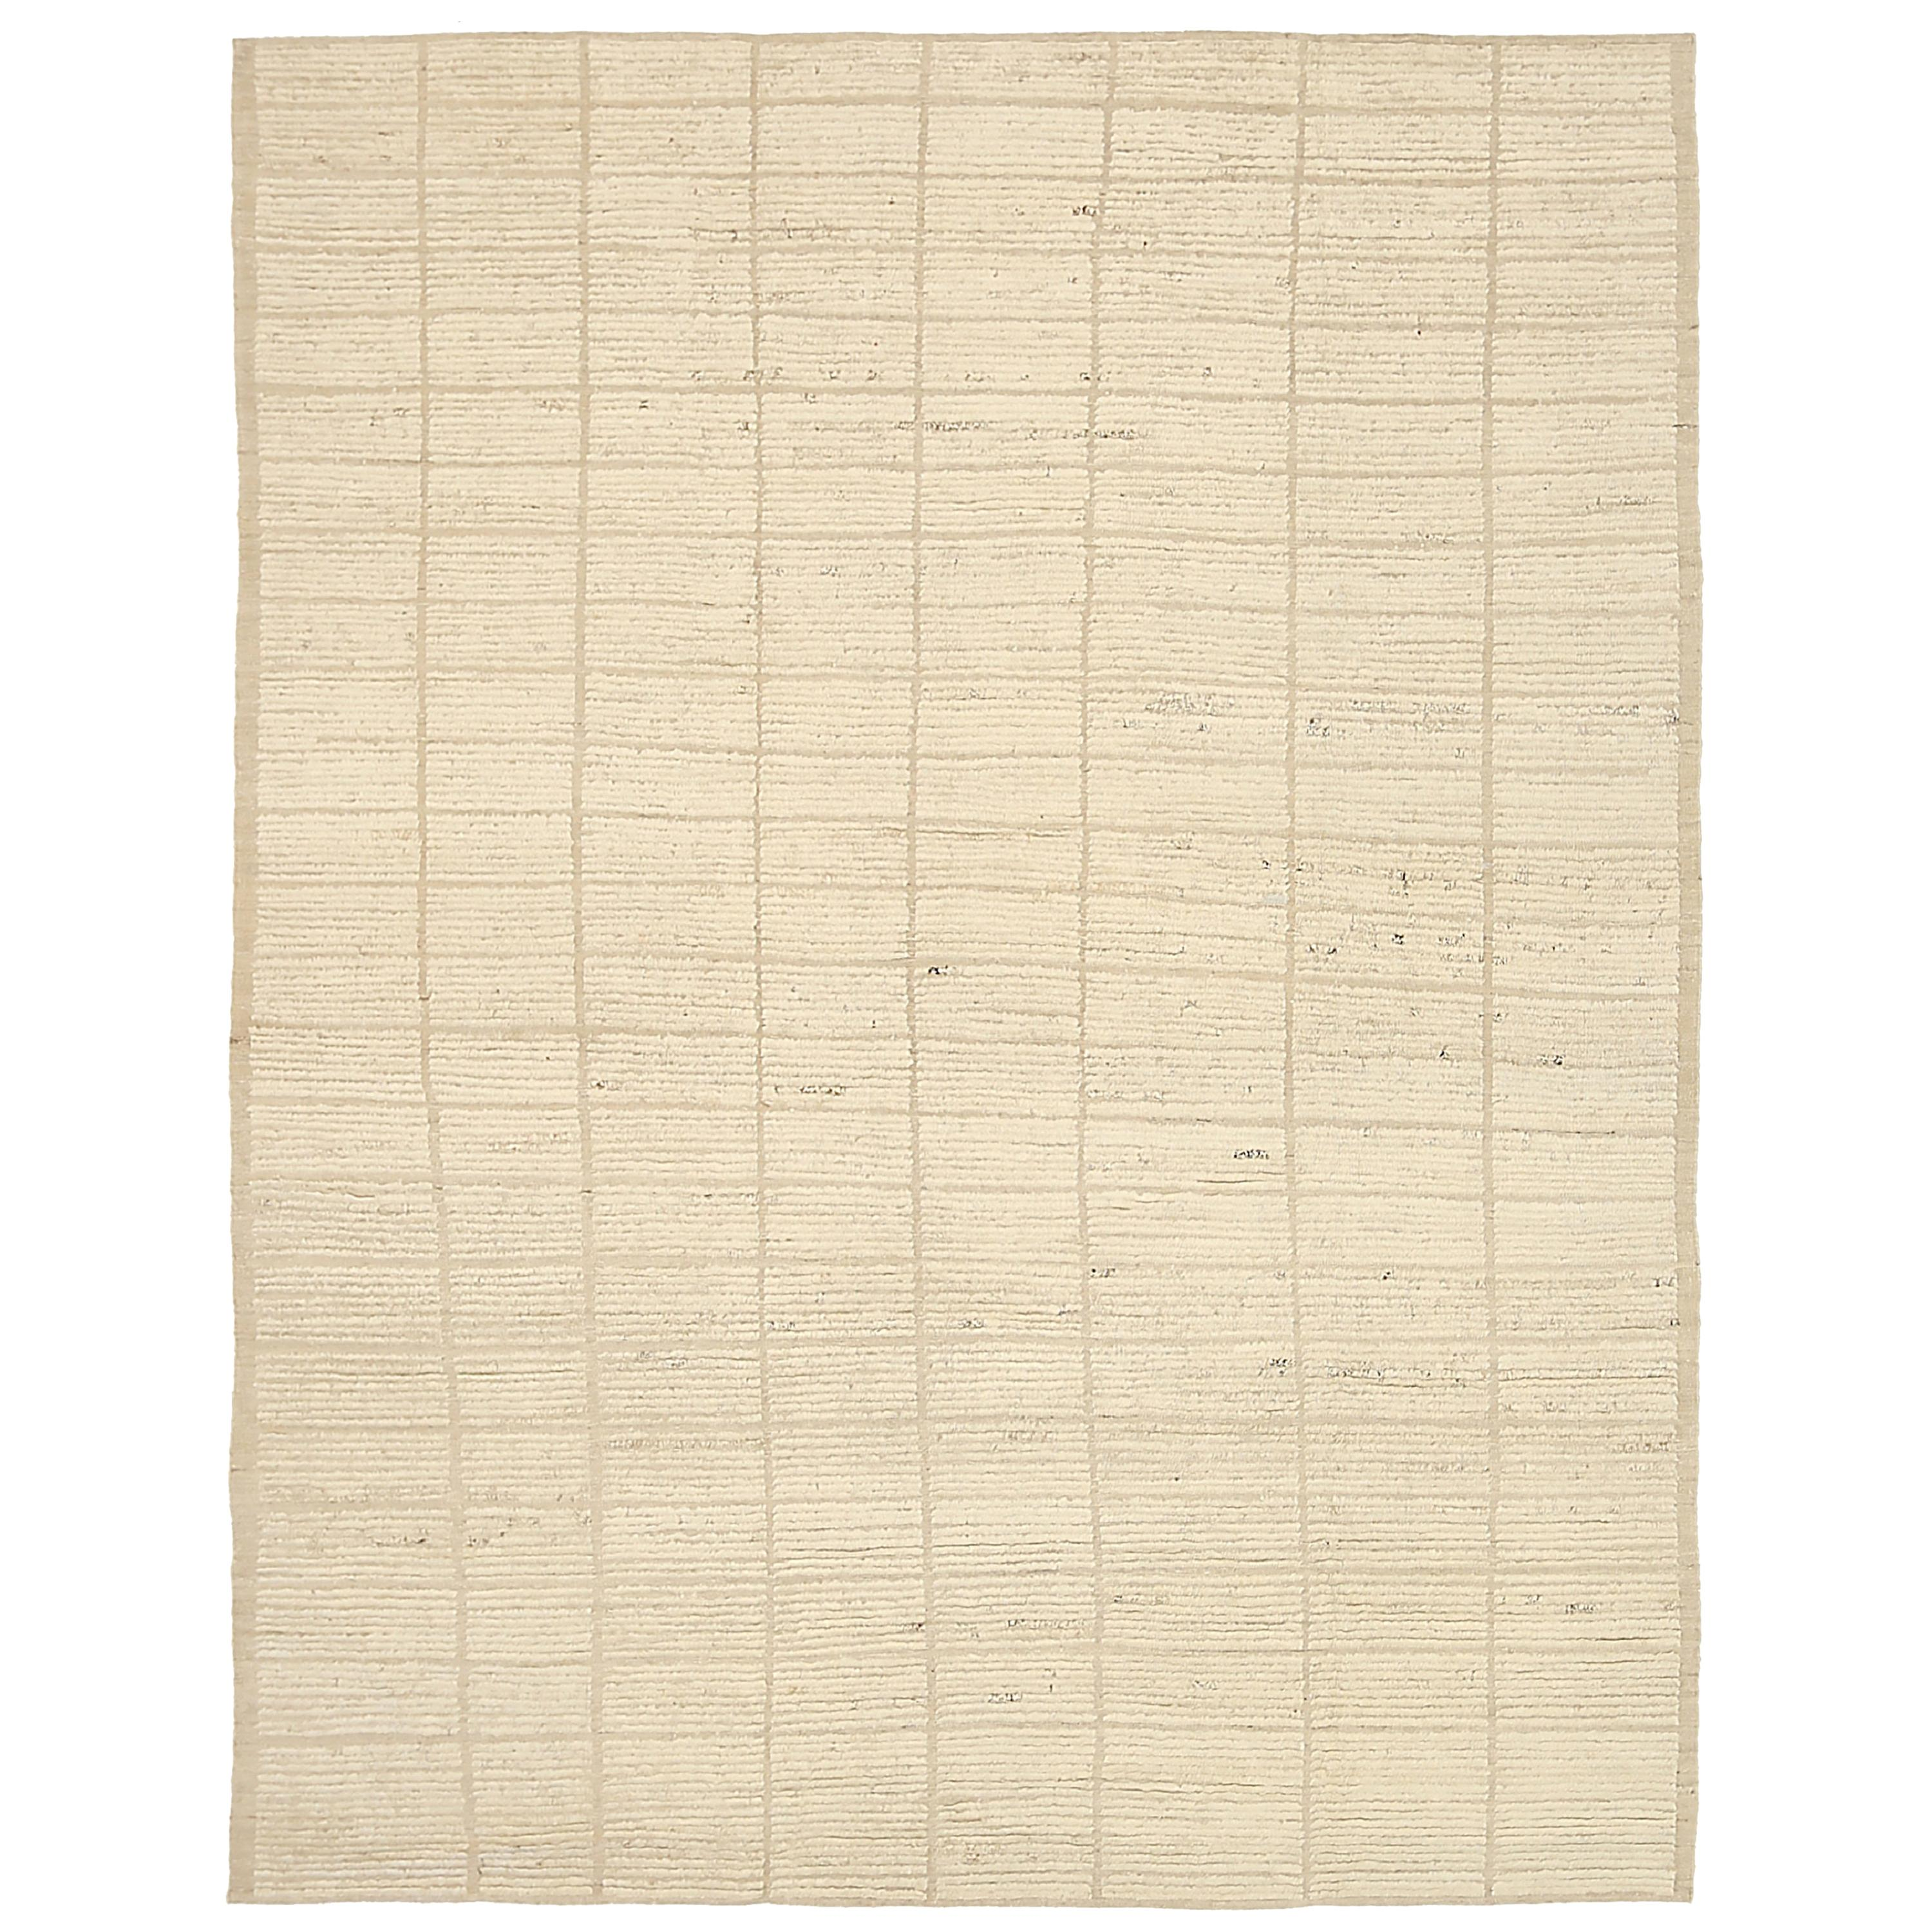 Nazmiyal Collection Ivory Textured Modern Distressed Rug 9 ft 2 in x 11 ft 10 in